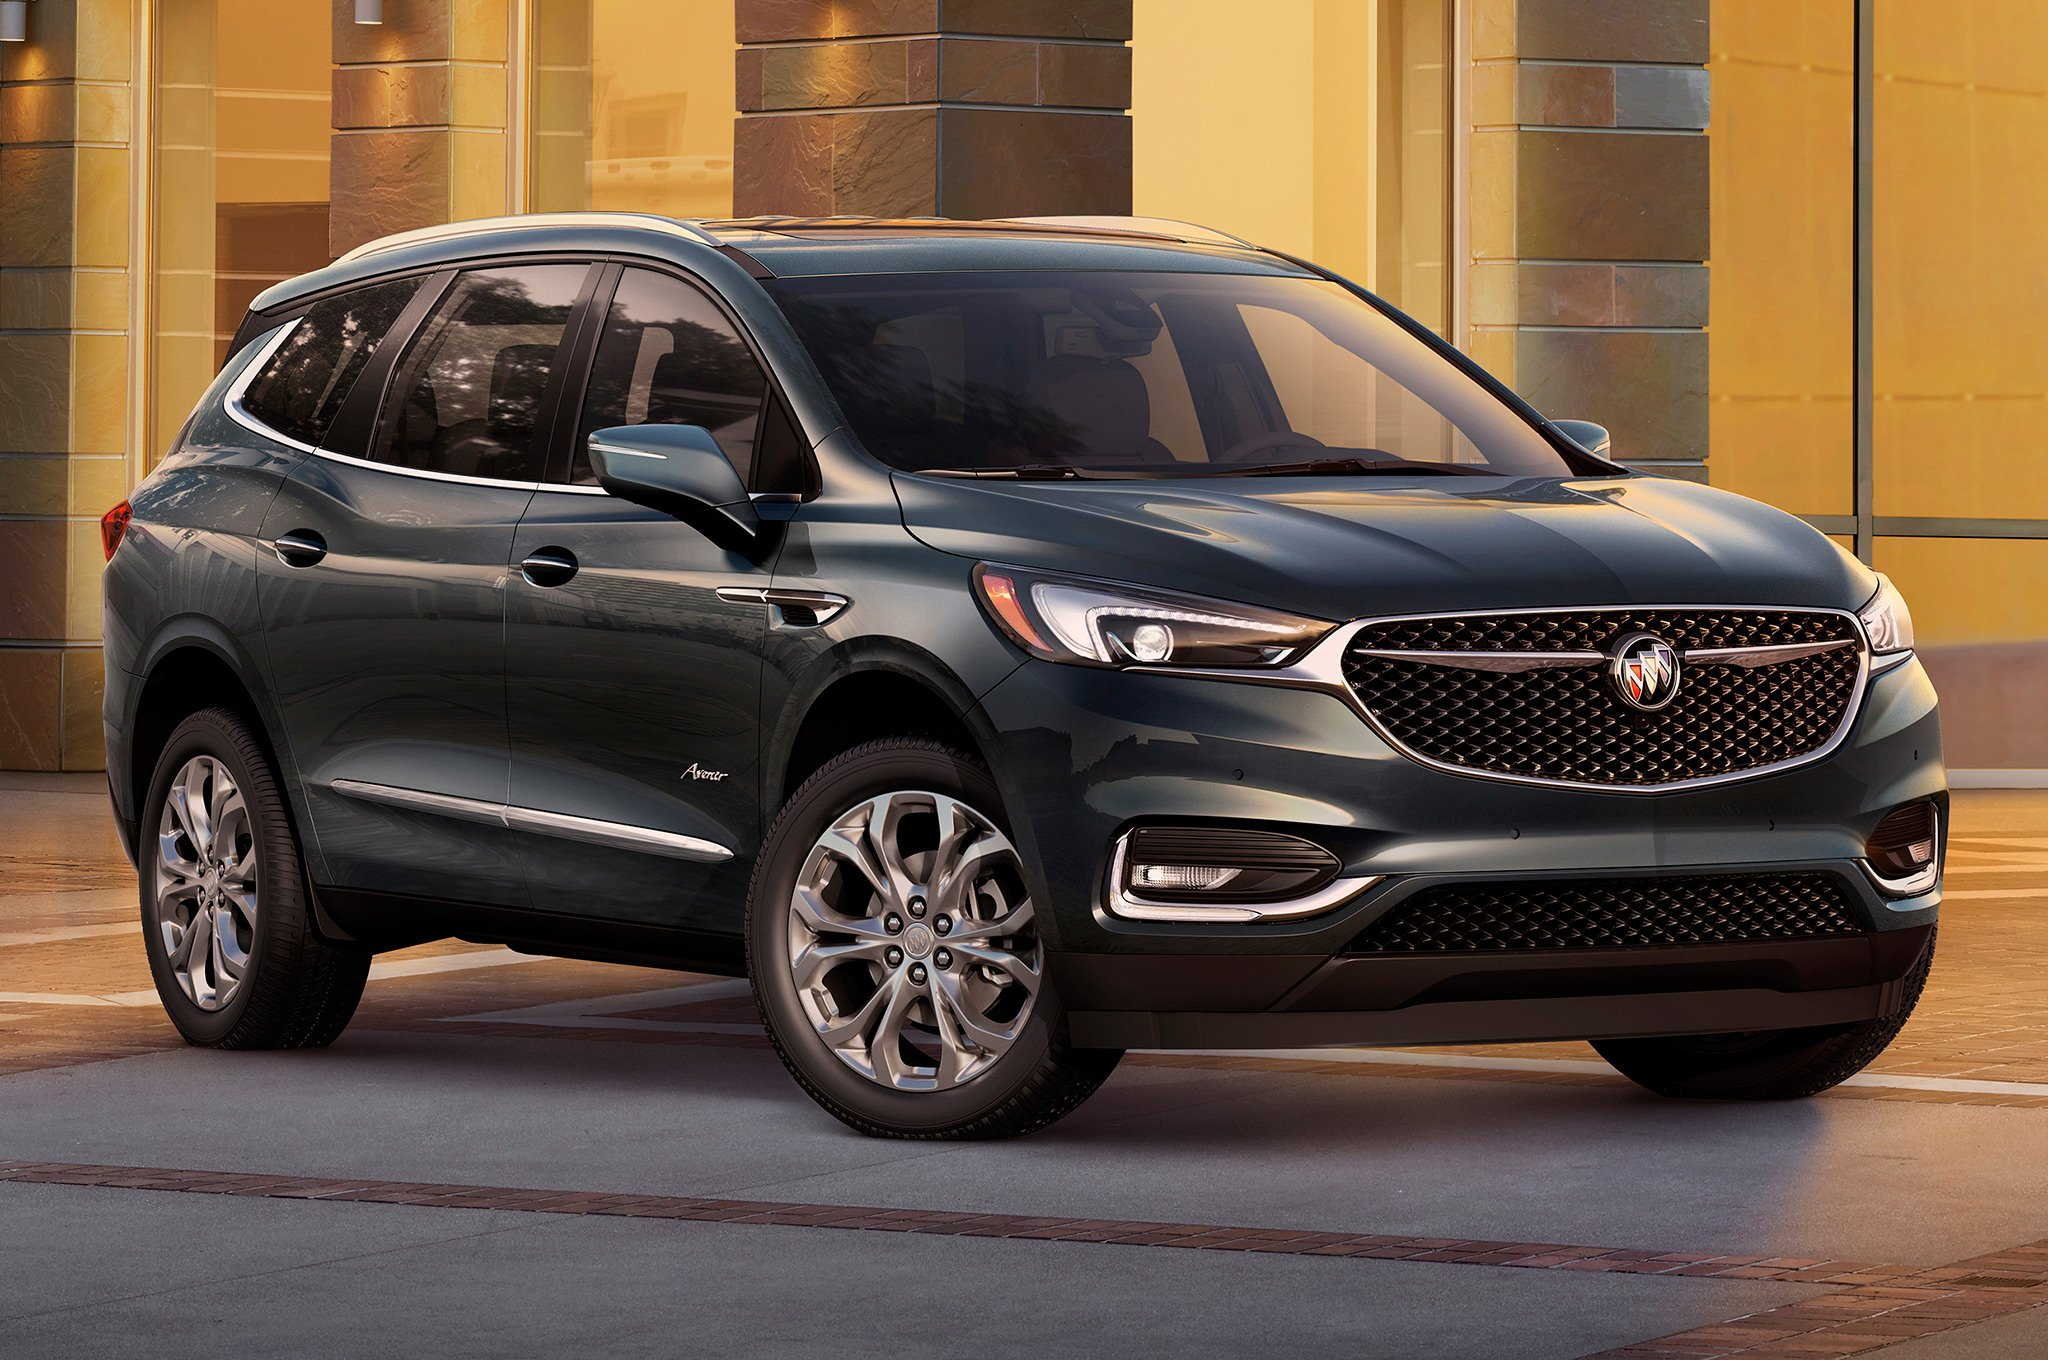 dallas used d finance incentives us marvin dealership dealer is payments enclave and buick encore specials tx gmc chevrolet love a car lease freeway new rebates